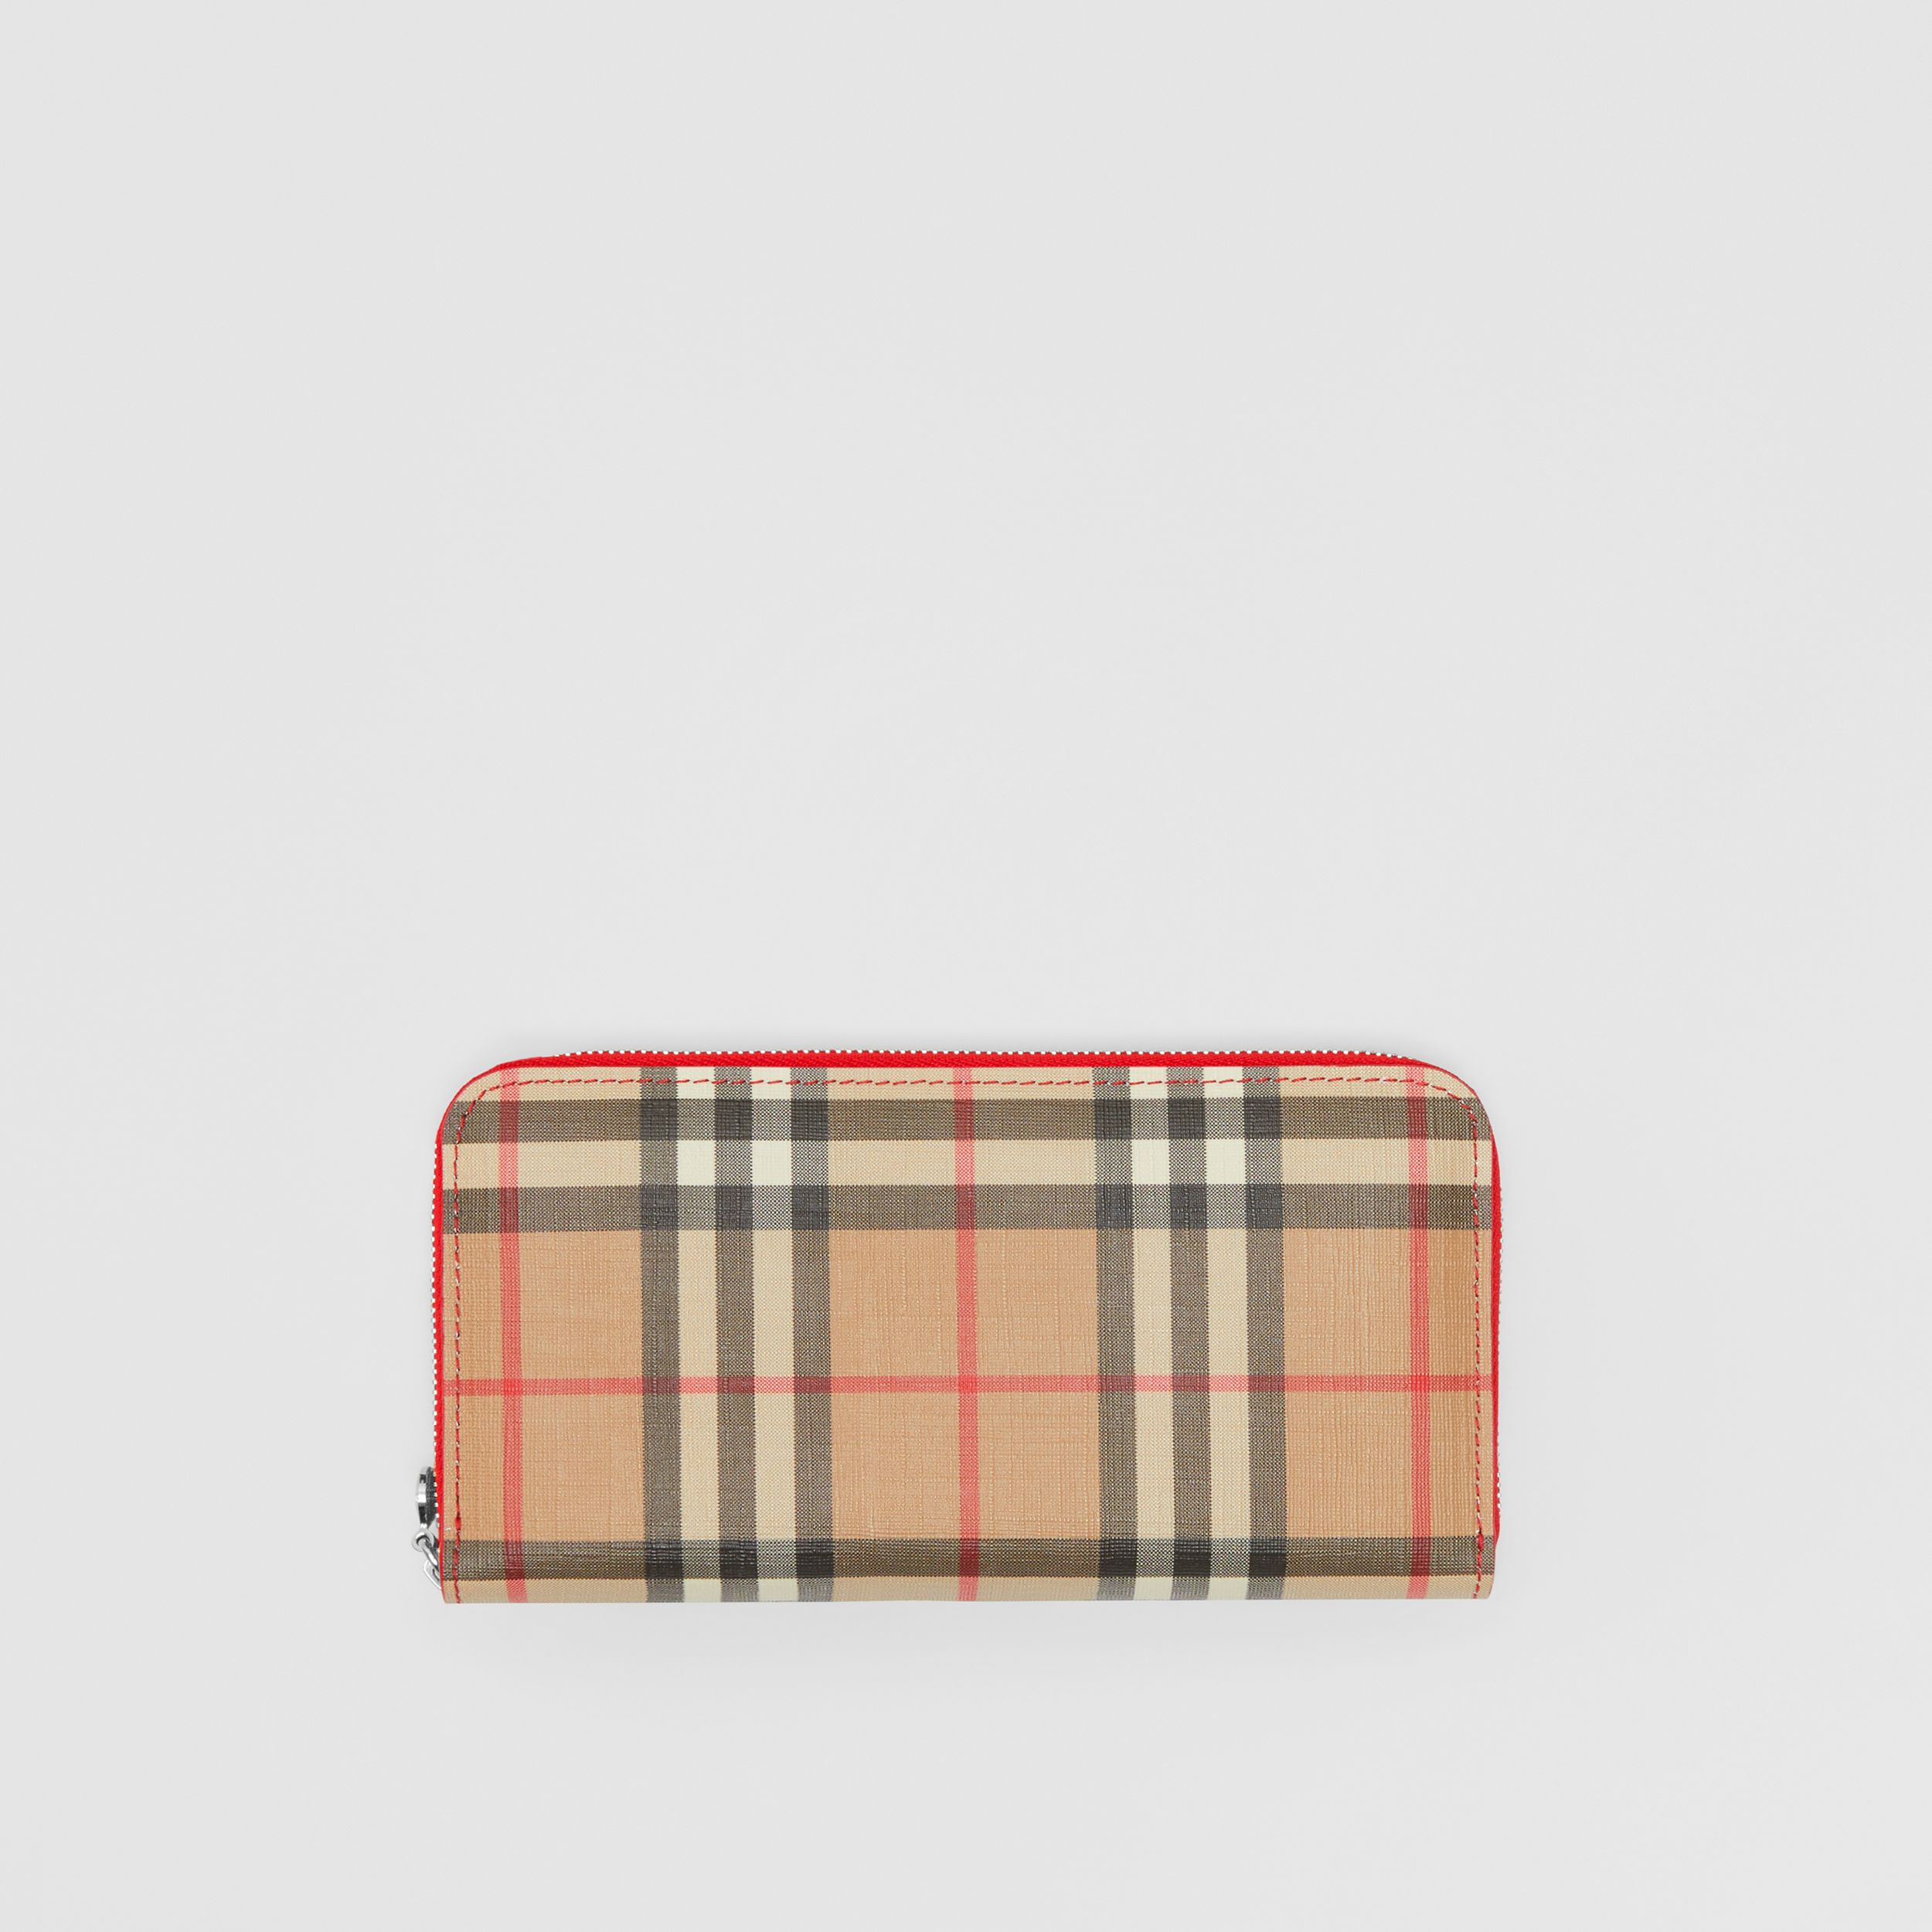 Vintage Check and Leather Ziparound Wallet in Bright Military Red - Women | Burberry Singapore - 1